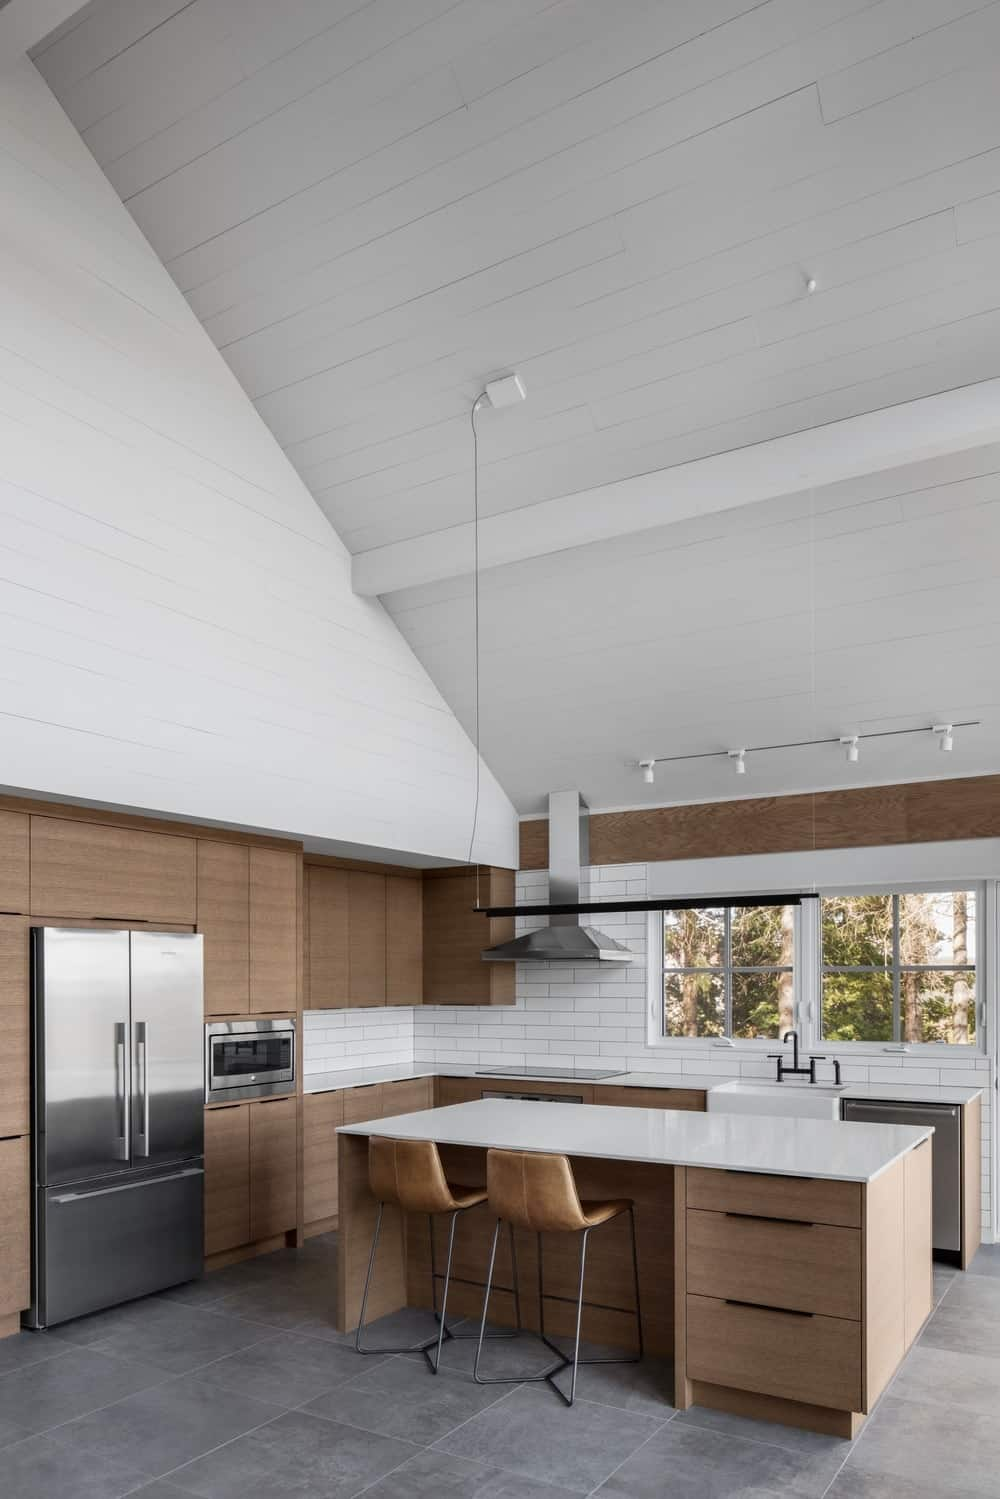 Ordinaire The Full View Of The Kitchen Showcasing Its Appliances, Center Island,  White Counters And